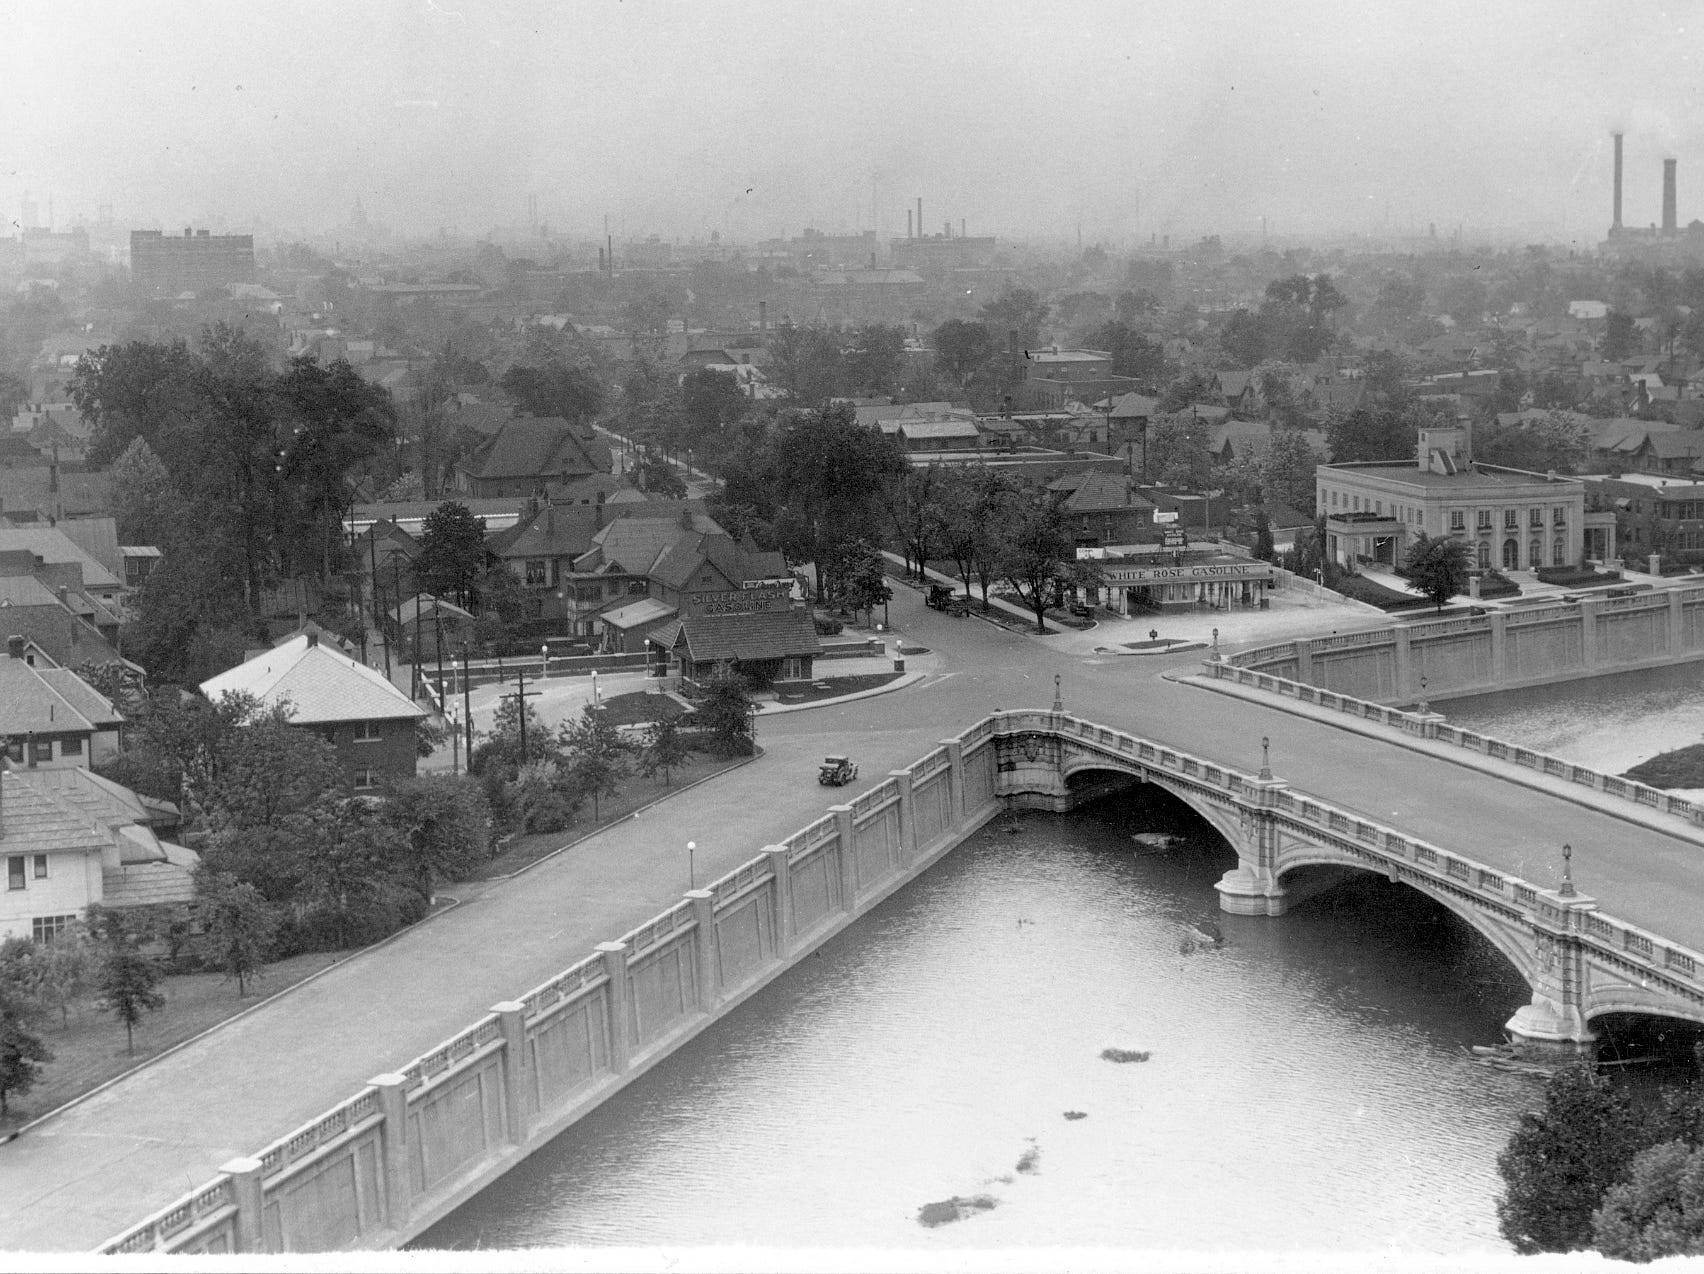 Concrete walls contain Fall Creek as it flows underneath the Meridian Street bridge in this view looking southwest towards downtown on May 28, 1928. In those days, this stretch of Meridian Street was a residential neighborhood graced with beautiful trees and inviting sidewalks.